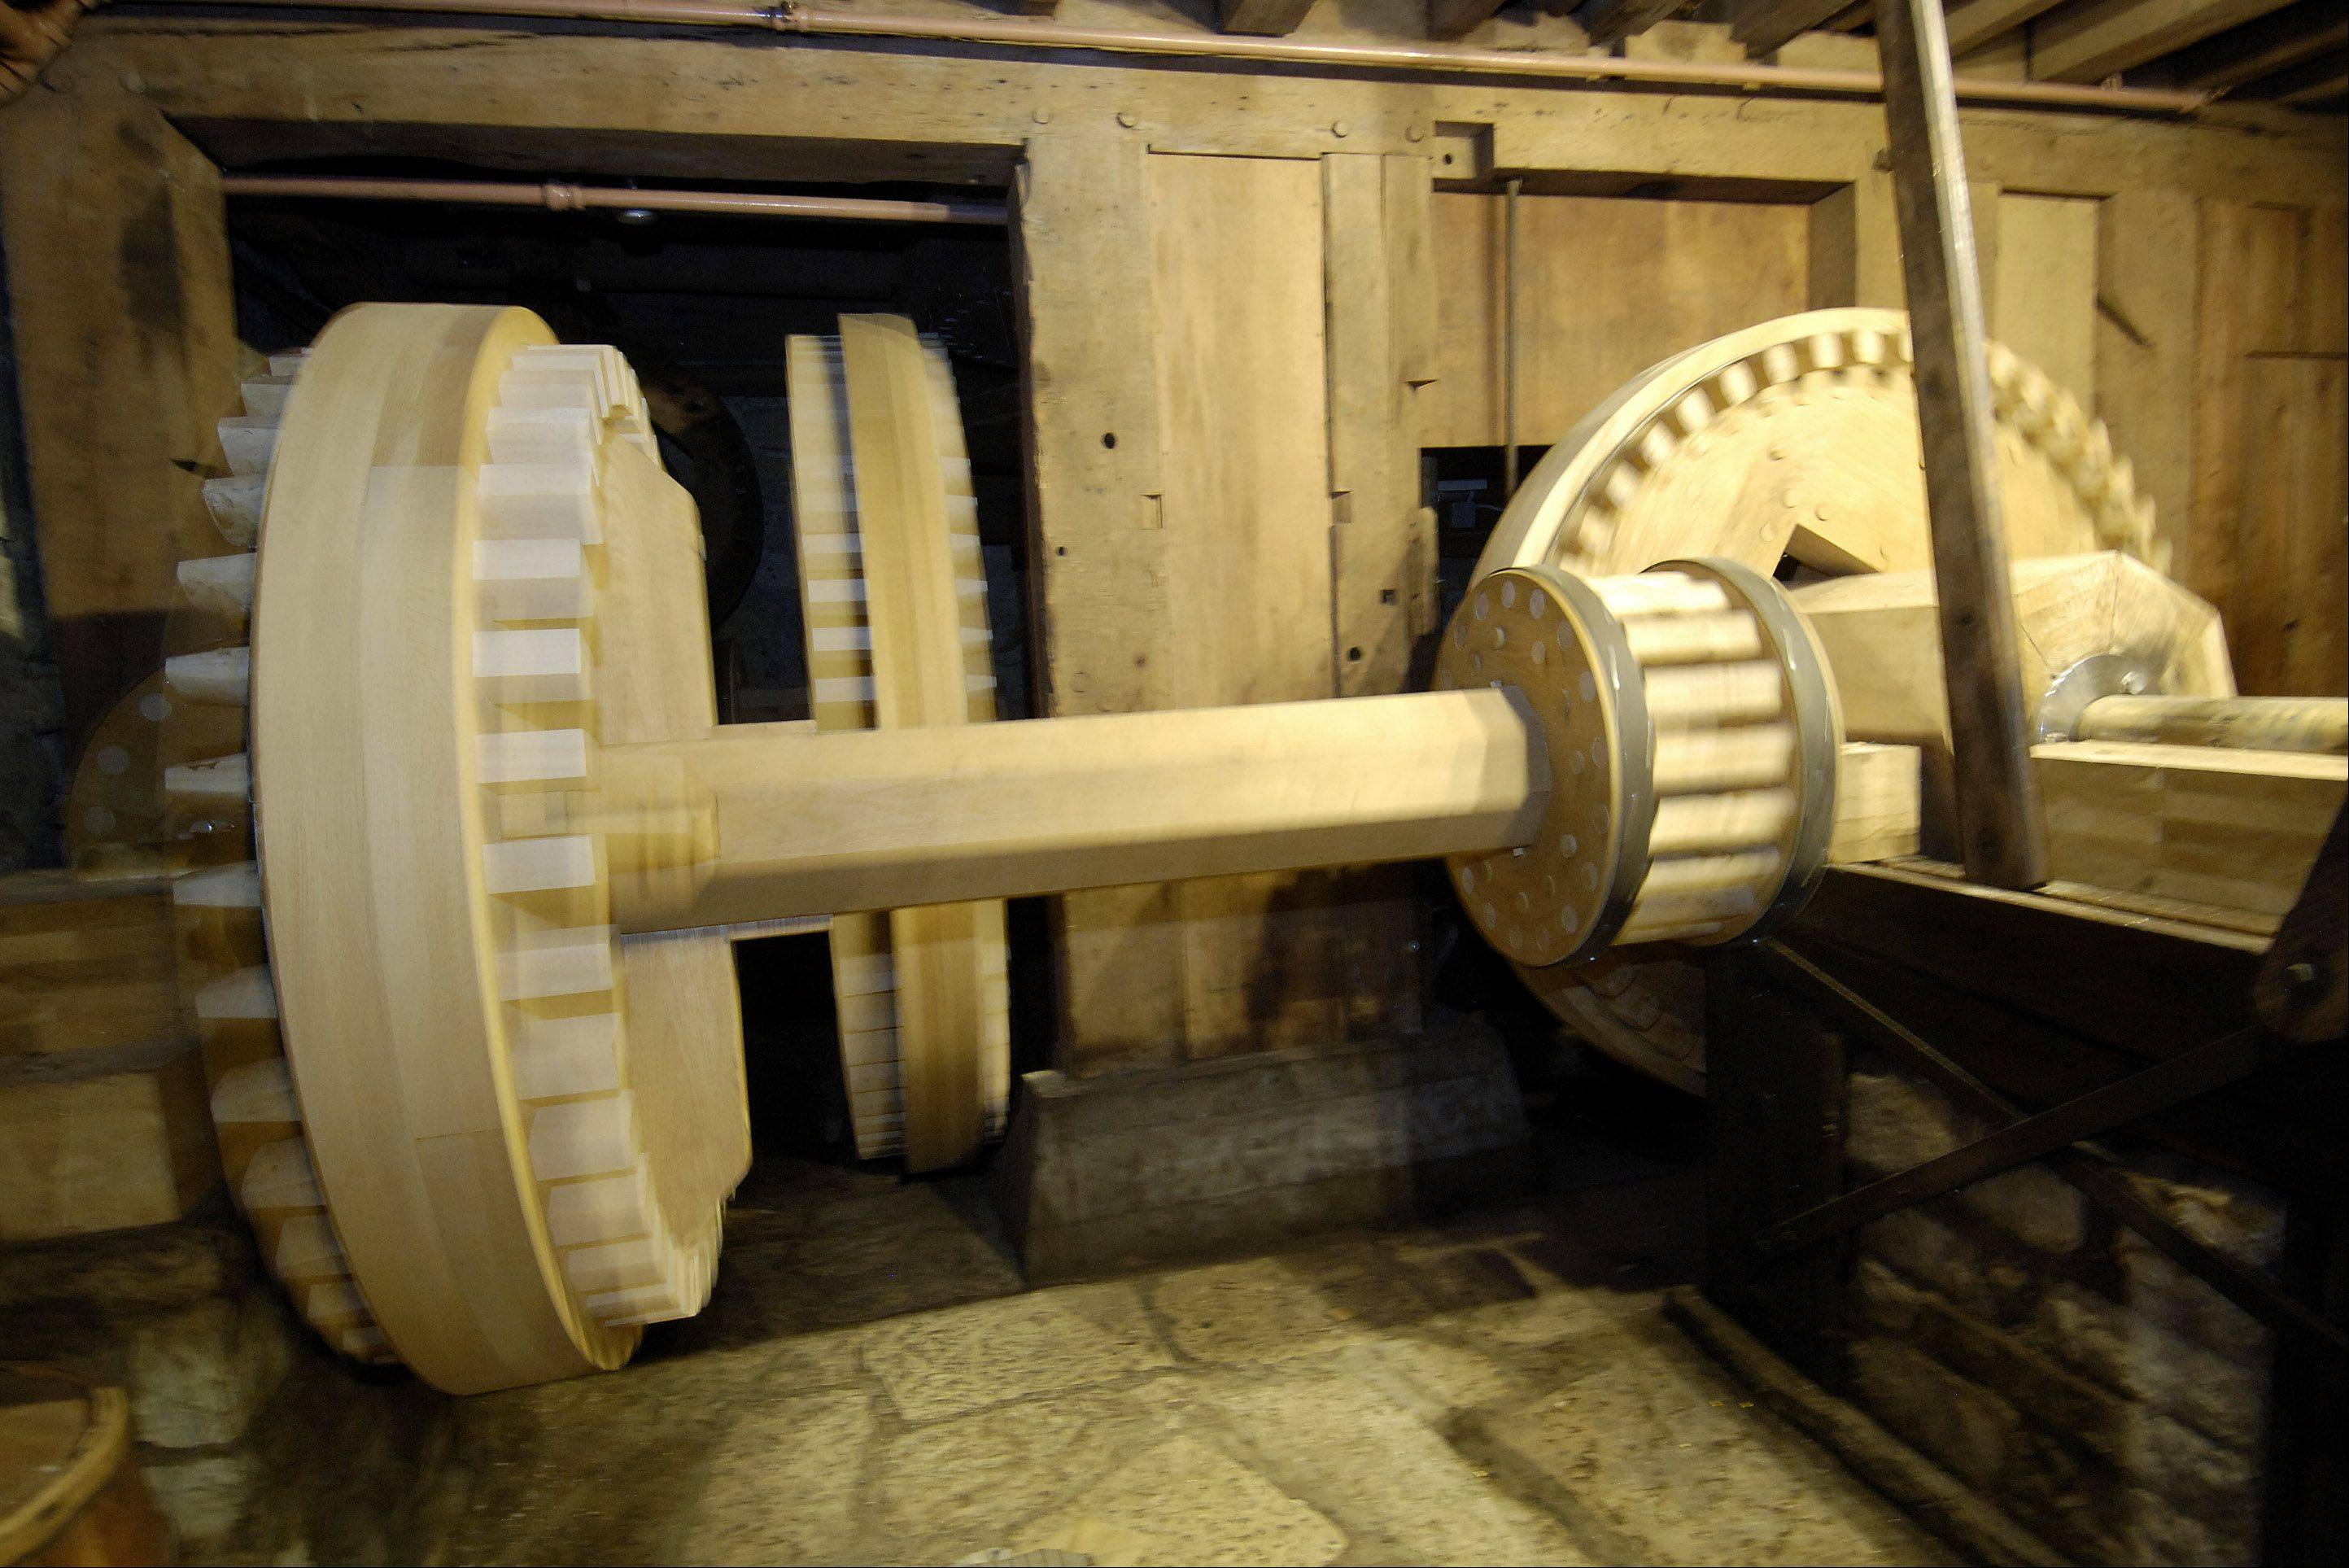 Visitors of Graue Mill and Museum can still see the corn mill's wheel turning, although it's now mechanically operated rather than water-operated.